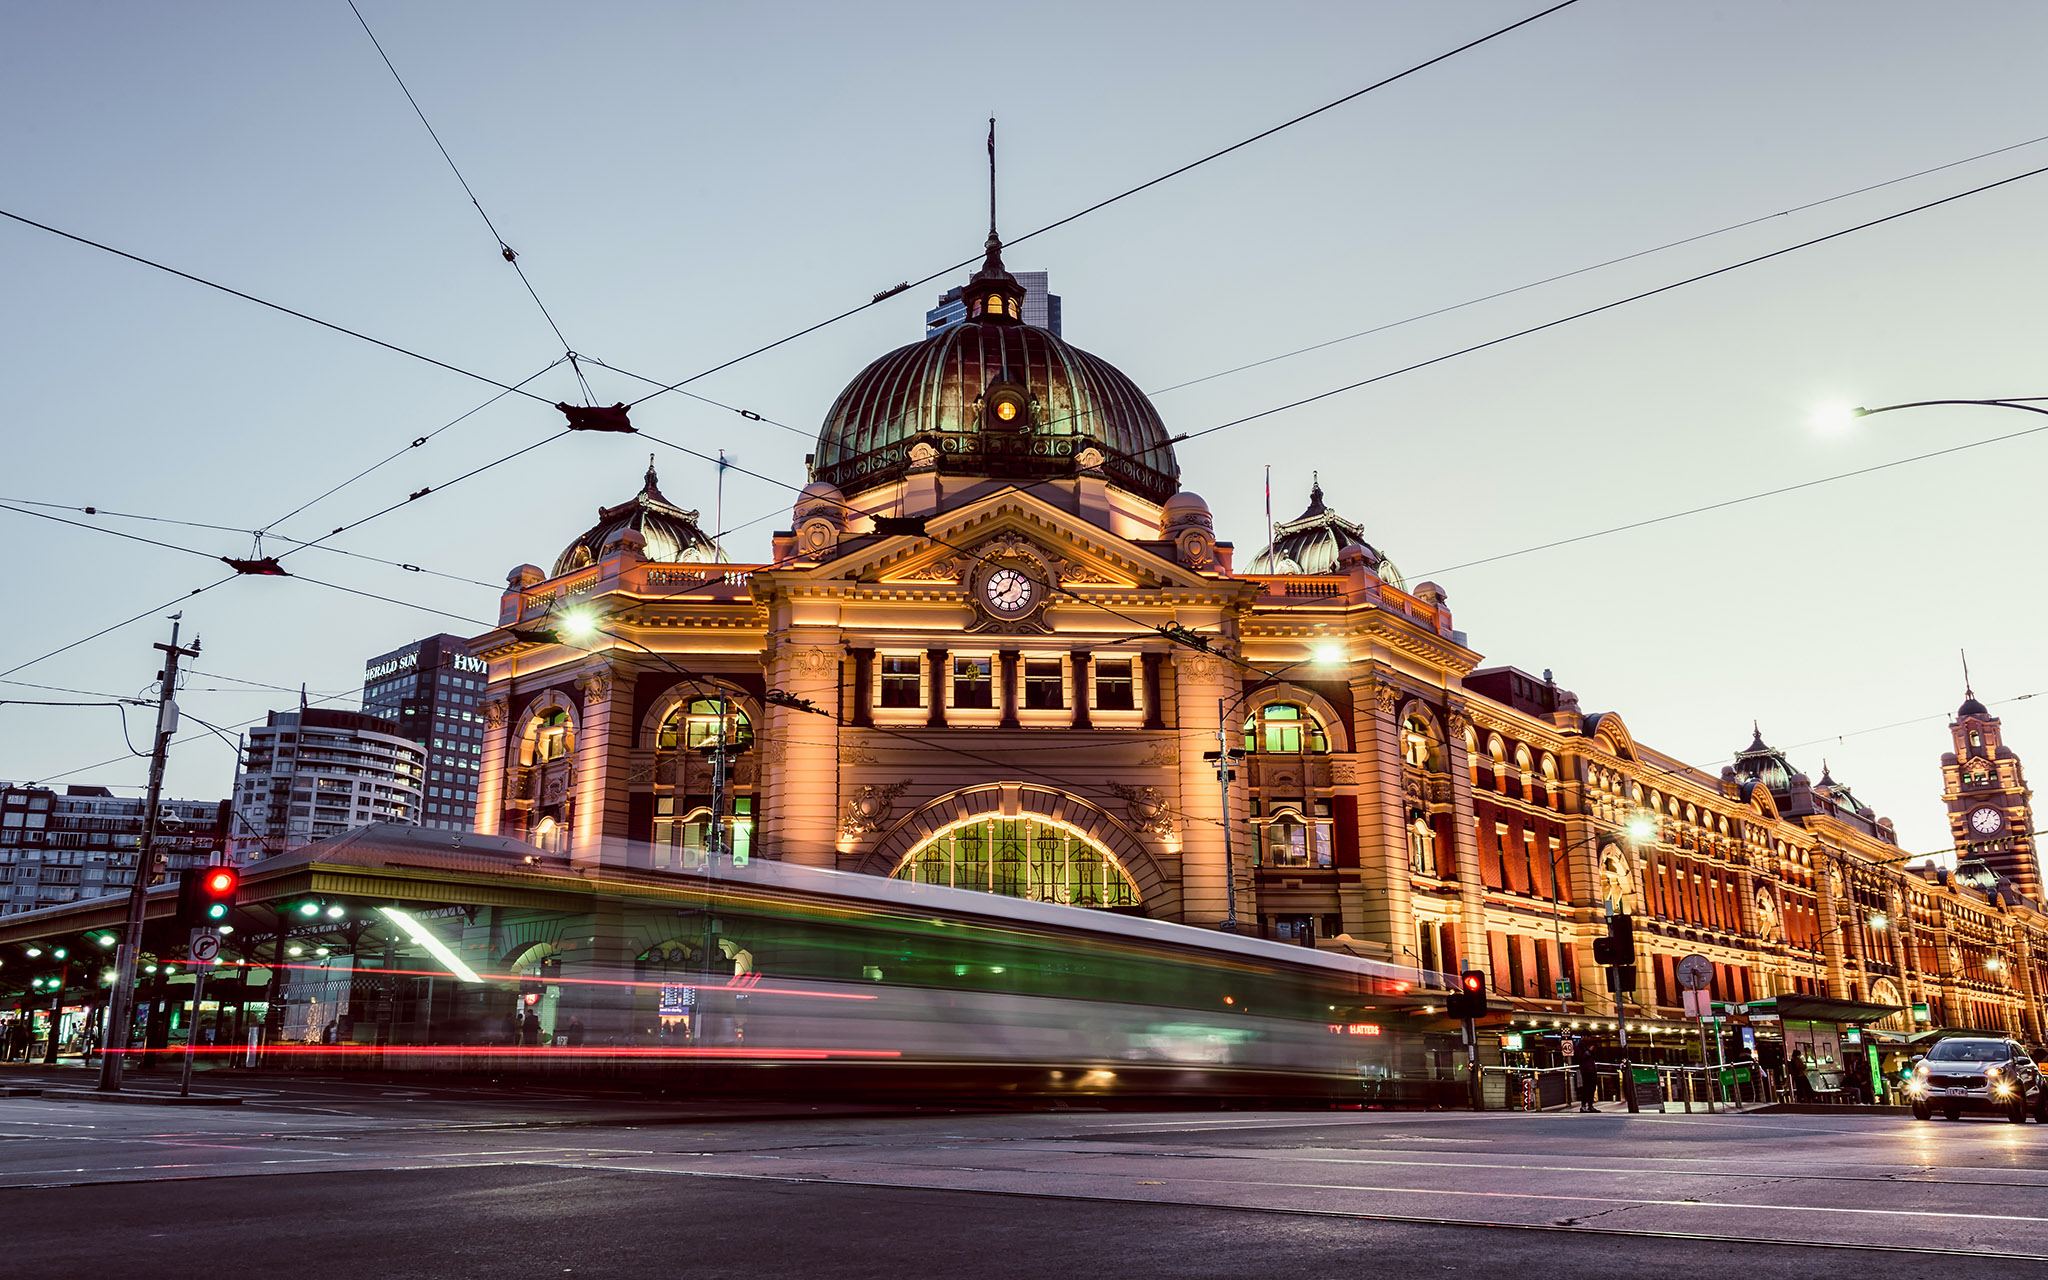 The sun sets behind Flinders Street Station in Melbourne as a tram zooms by - Photo by Paul Tadday